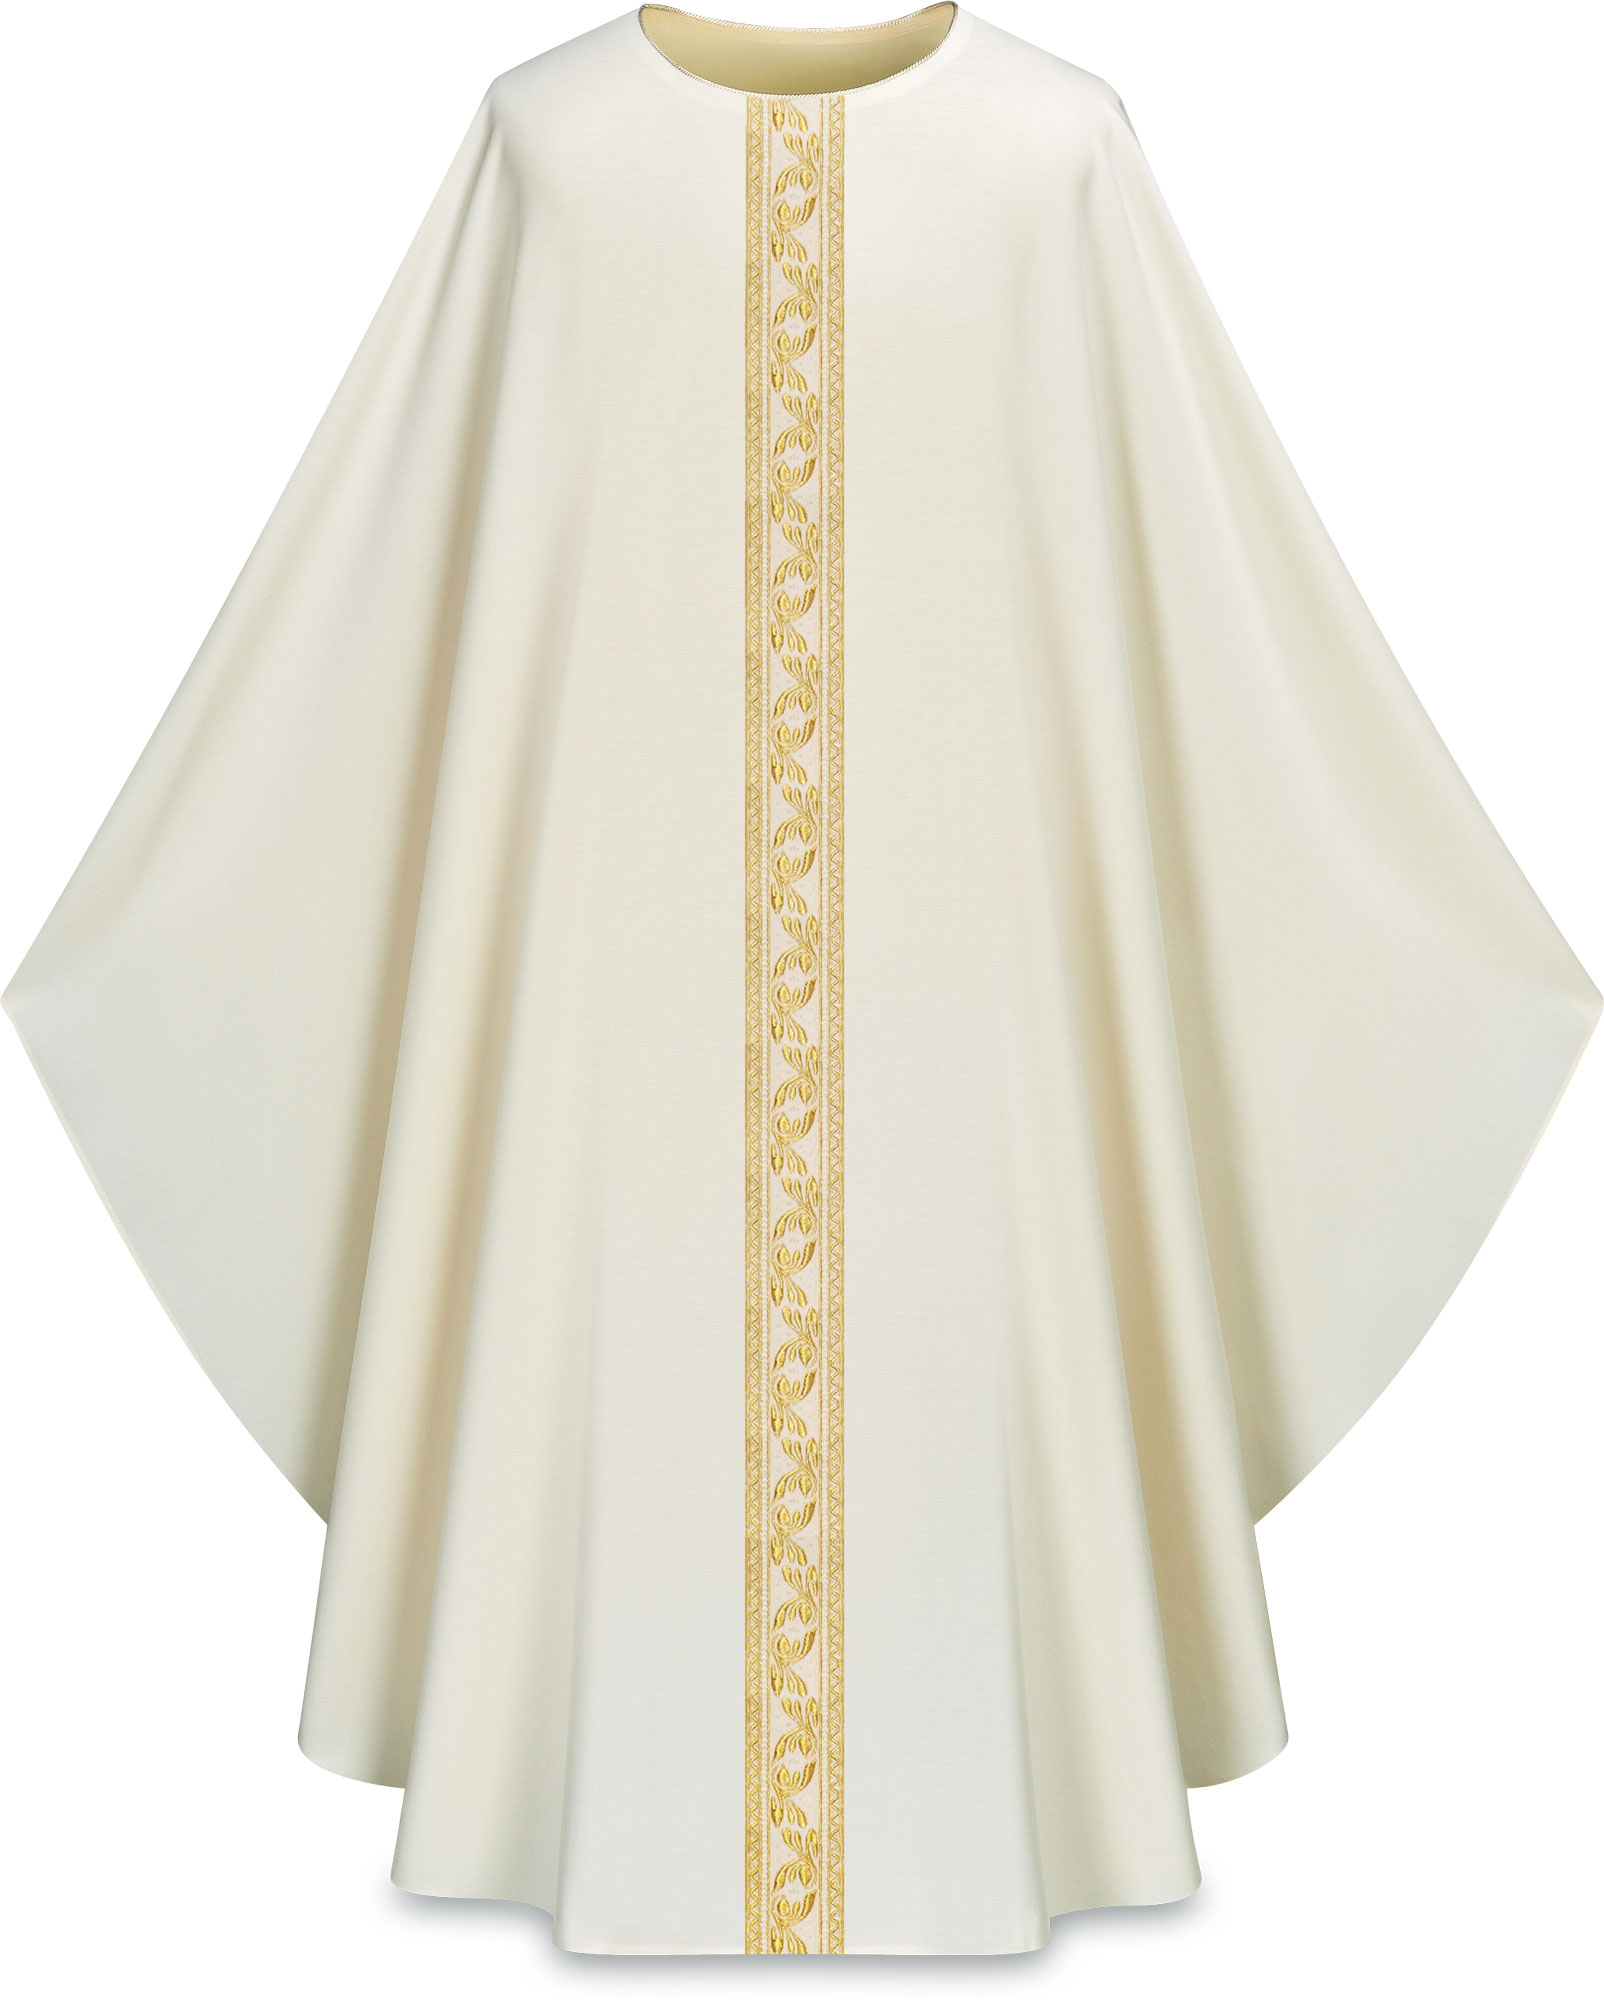 Chasuble - 5184 White